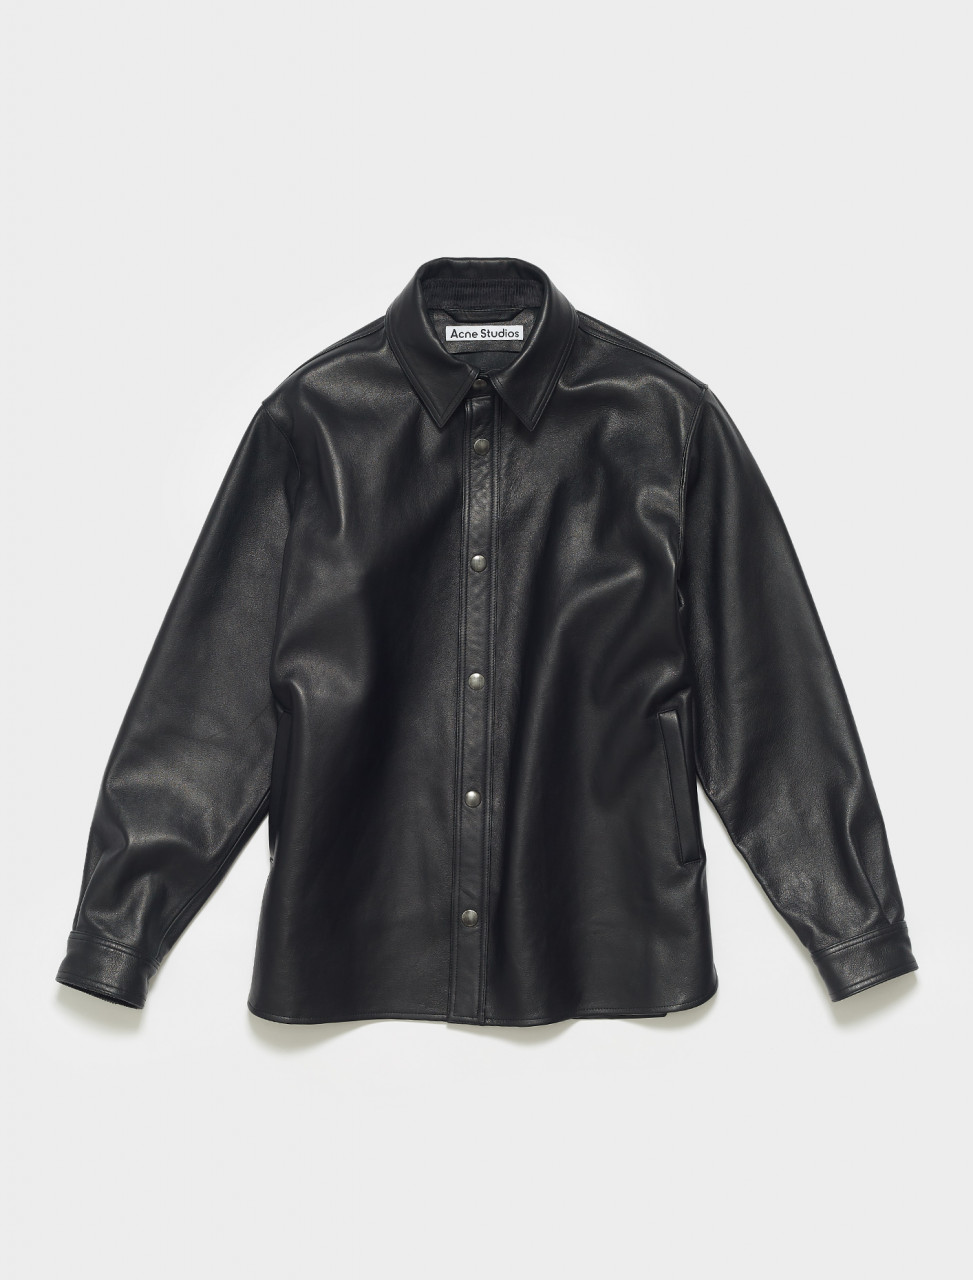 B70072-900 ACNE STUDIOS LARK NAPPA LEATHER OVERSHIRT IN BLACK